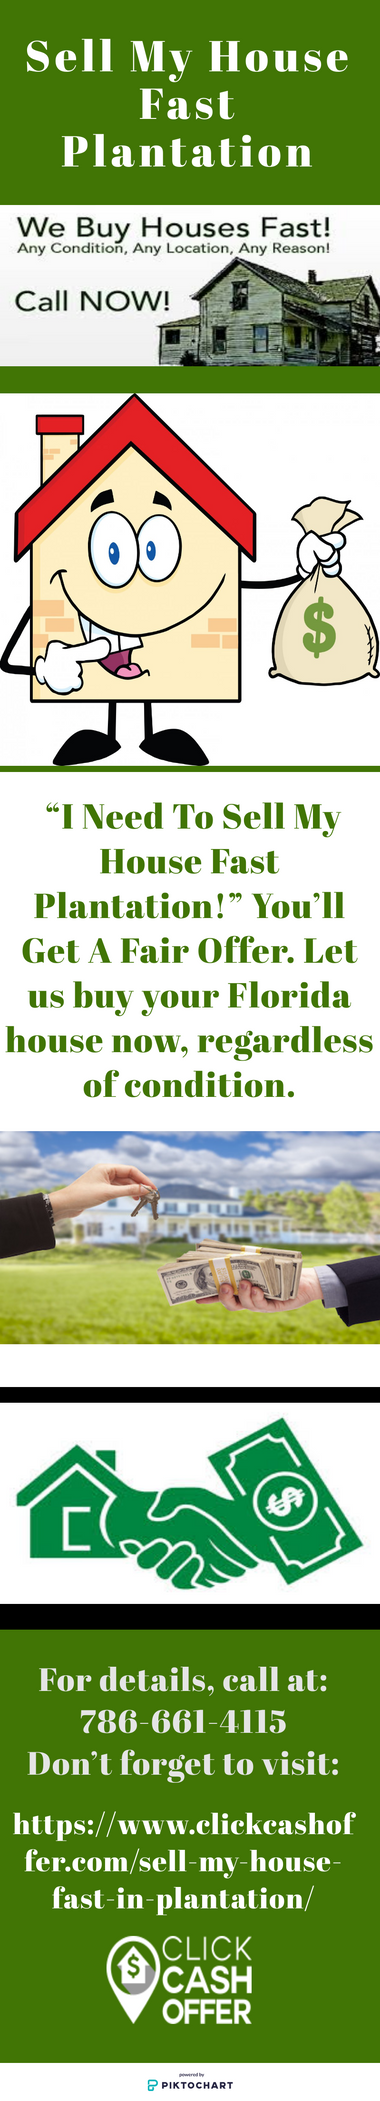 Sell My House Fast Plantation by webuyallhousesfast